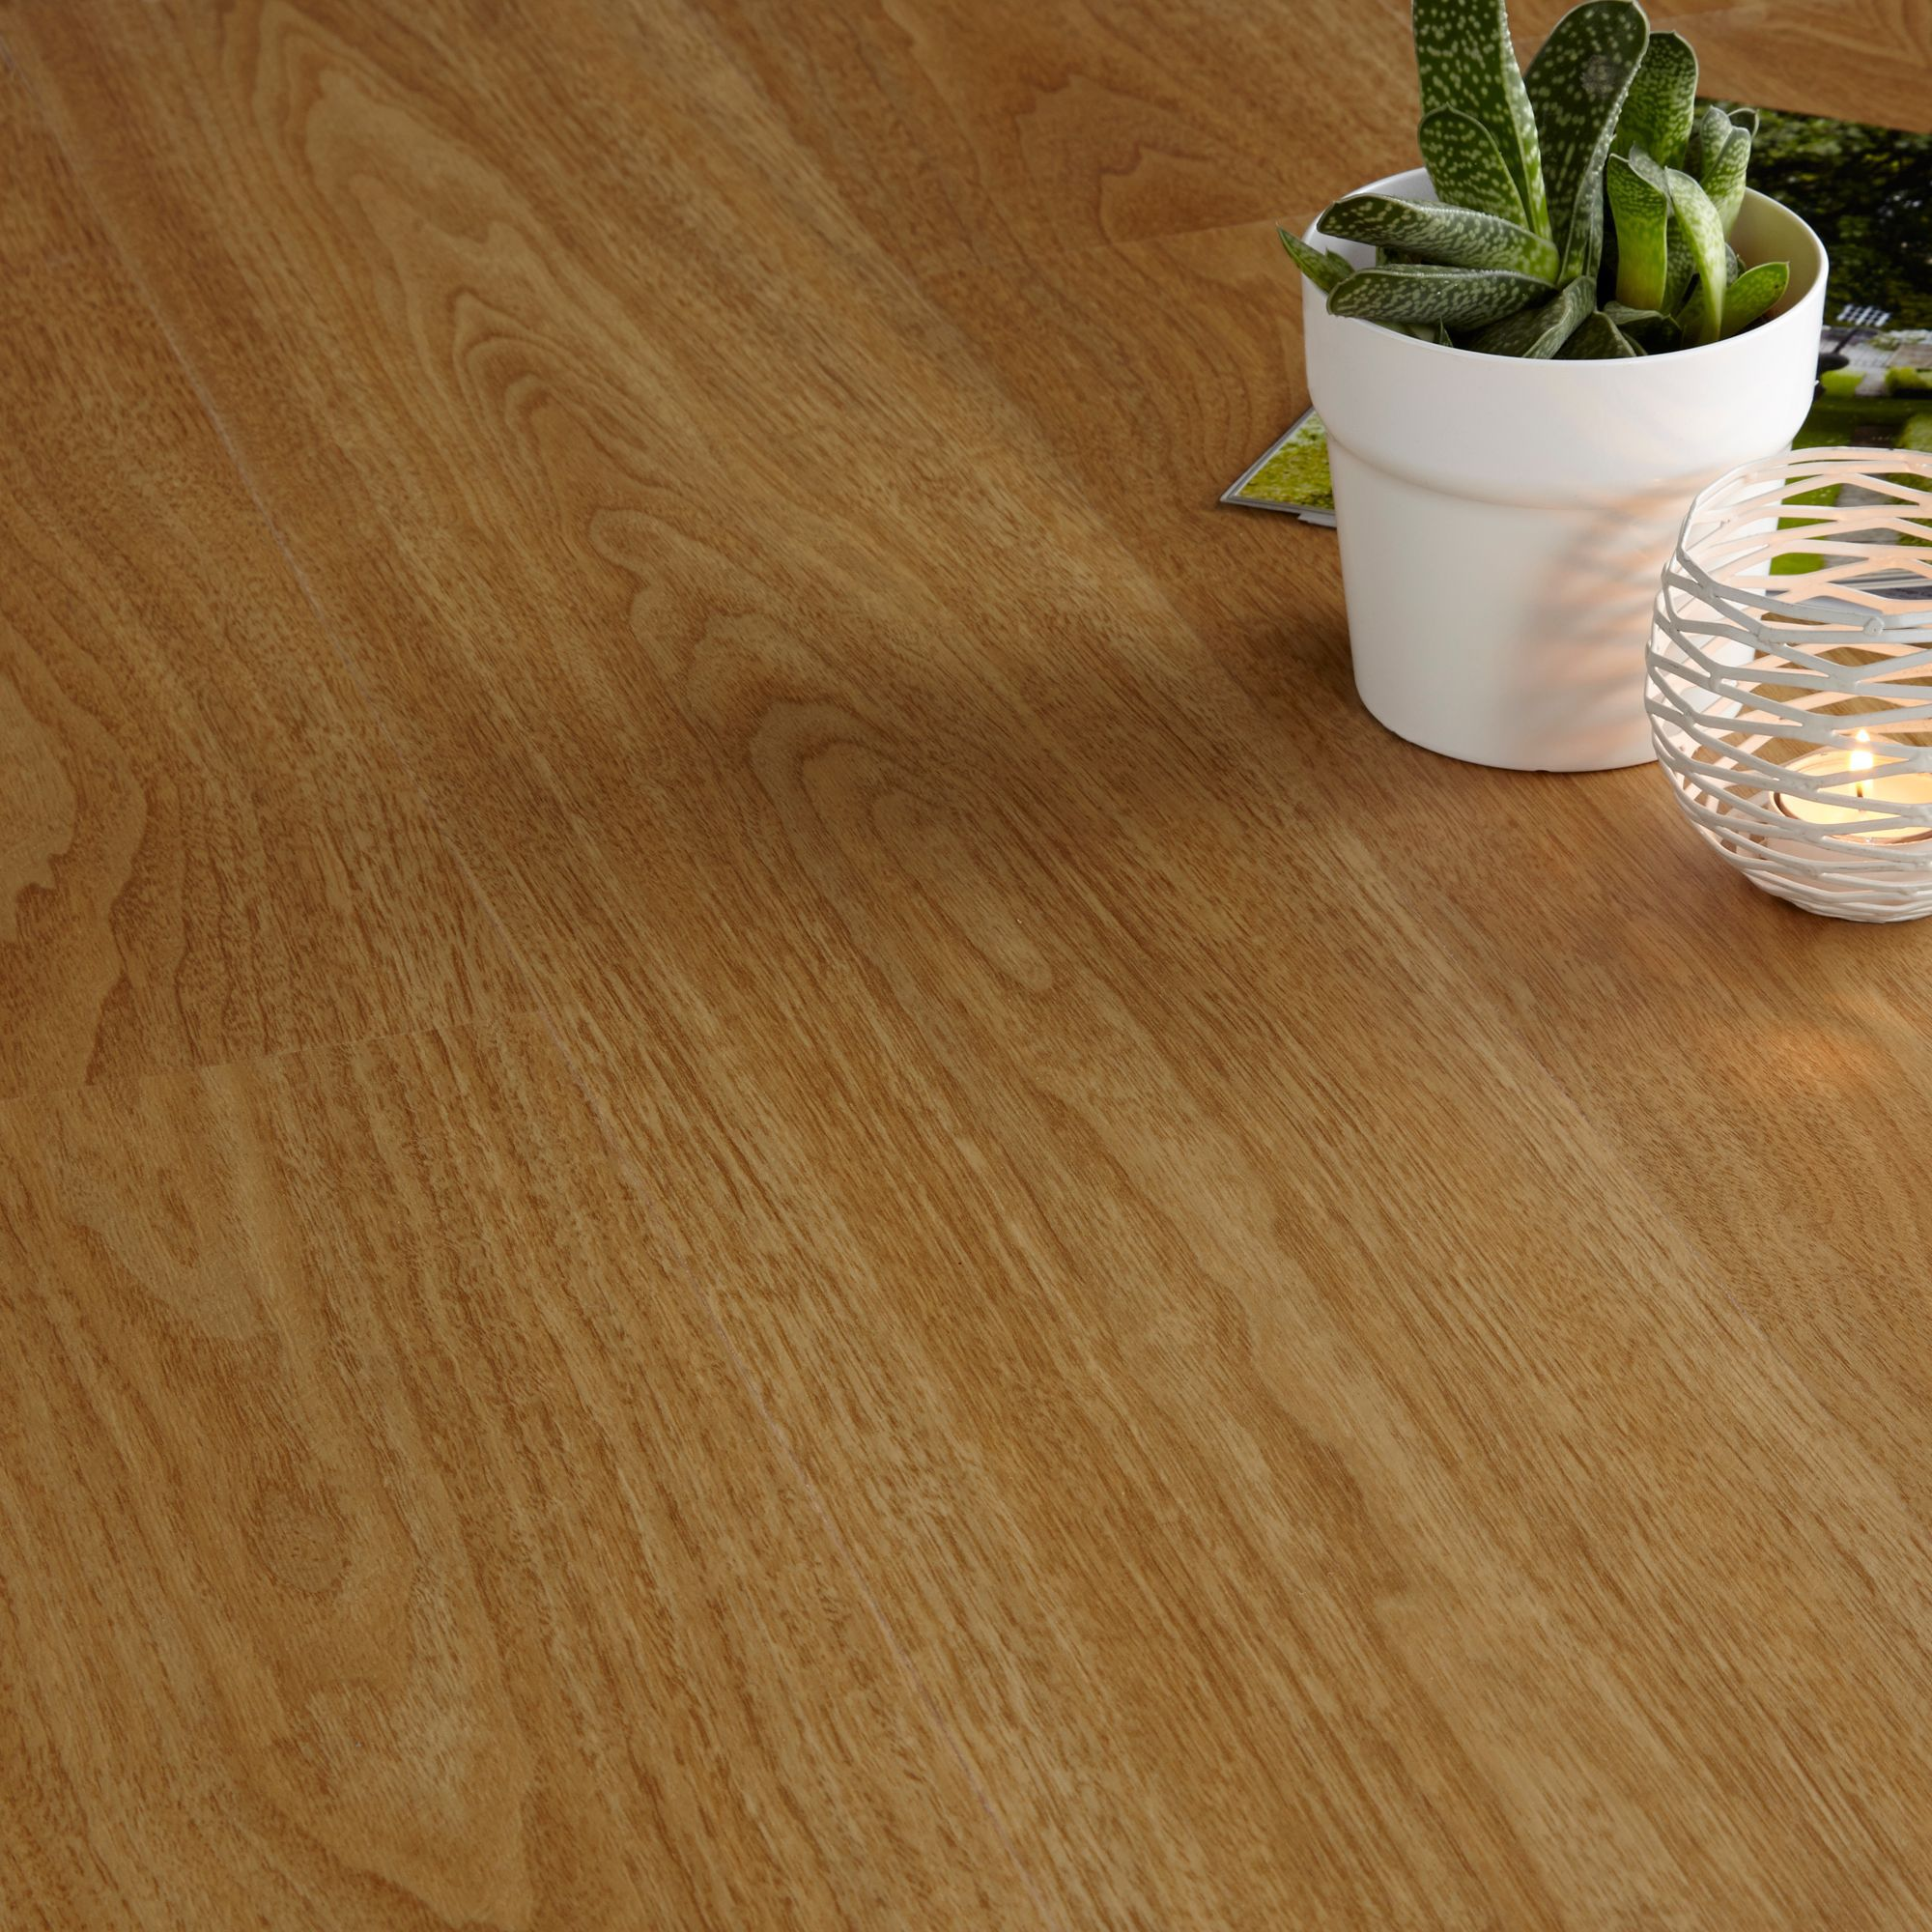 Colours walnut effect luxury vinyl click flooring 176 m pack colours walnut effect luxury vinyl click flooring 176 m pack departments diy at bq dailygadgetfo Image collections